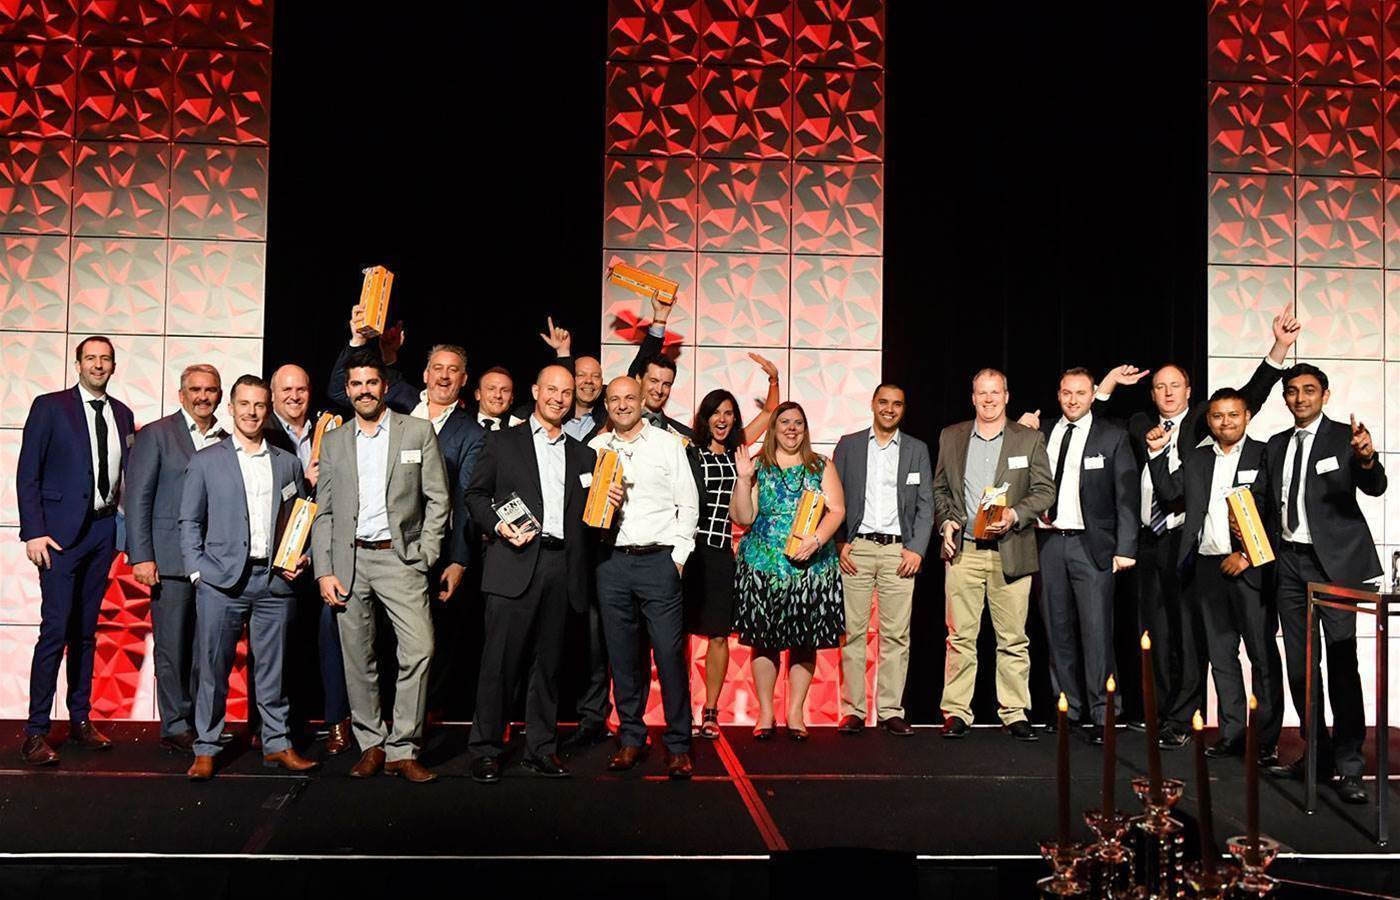 Barhead Solutions, Adactin, CMD top 2018 CRN Fast50